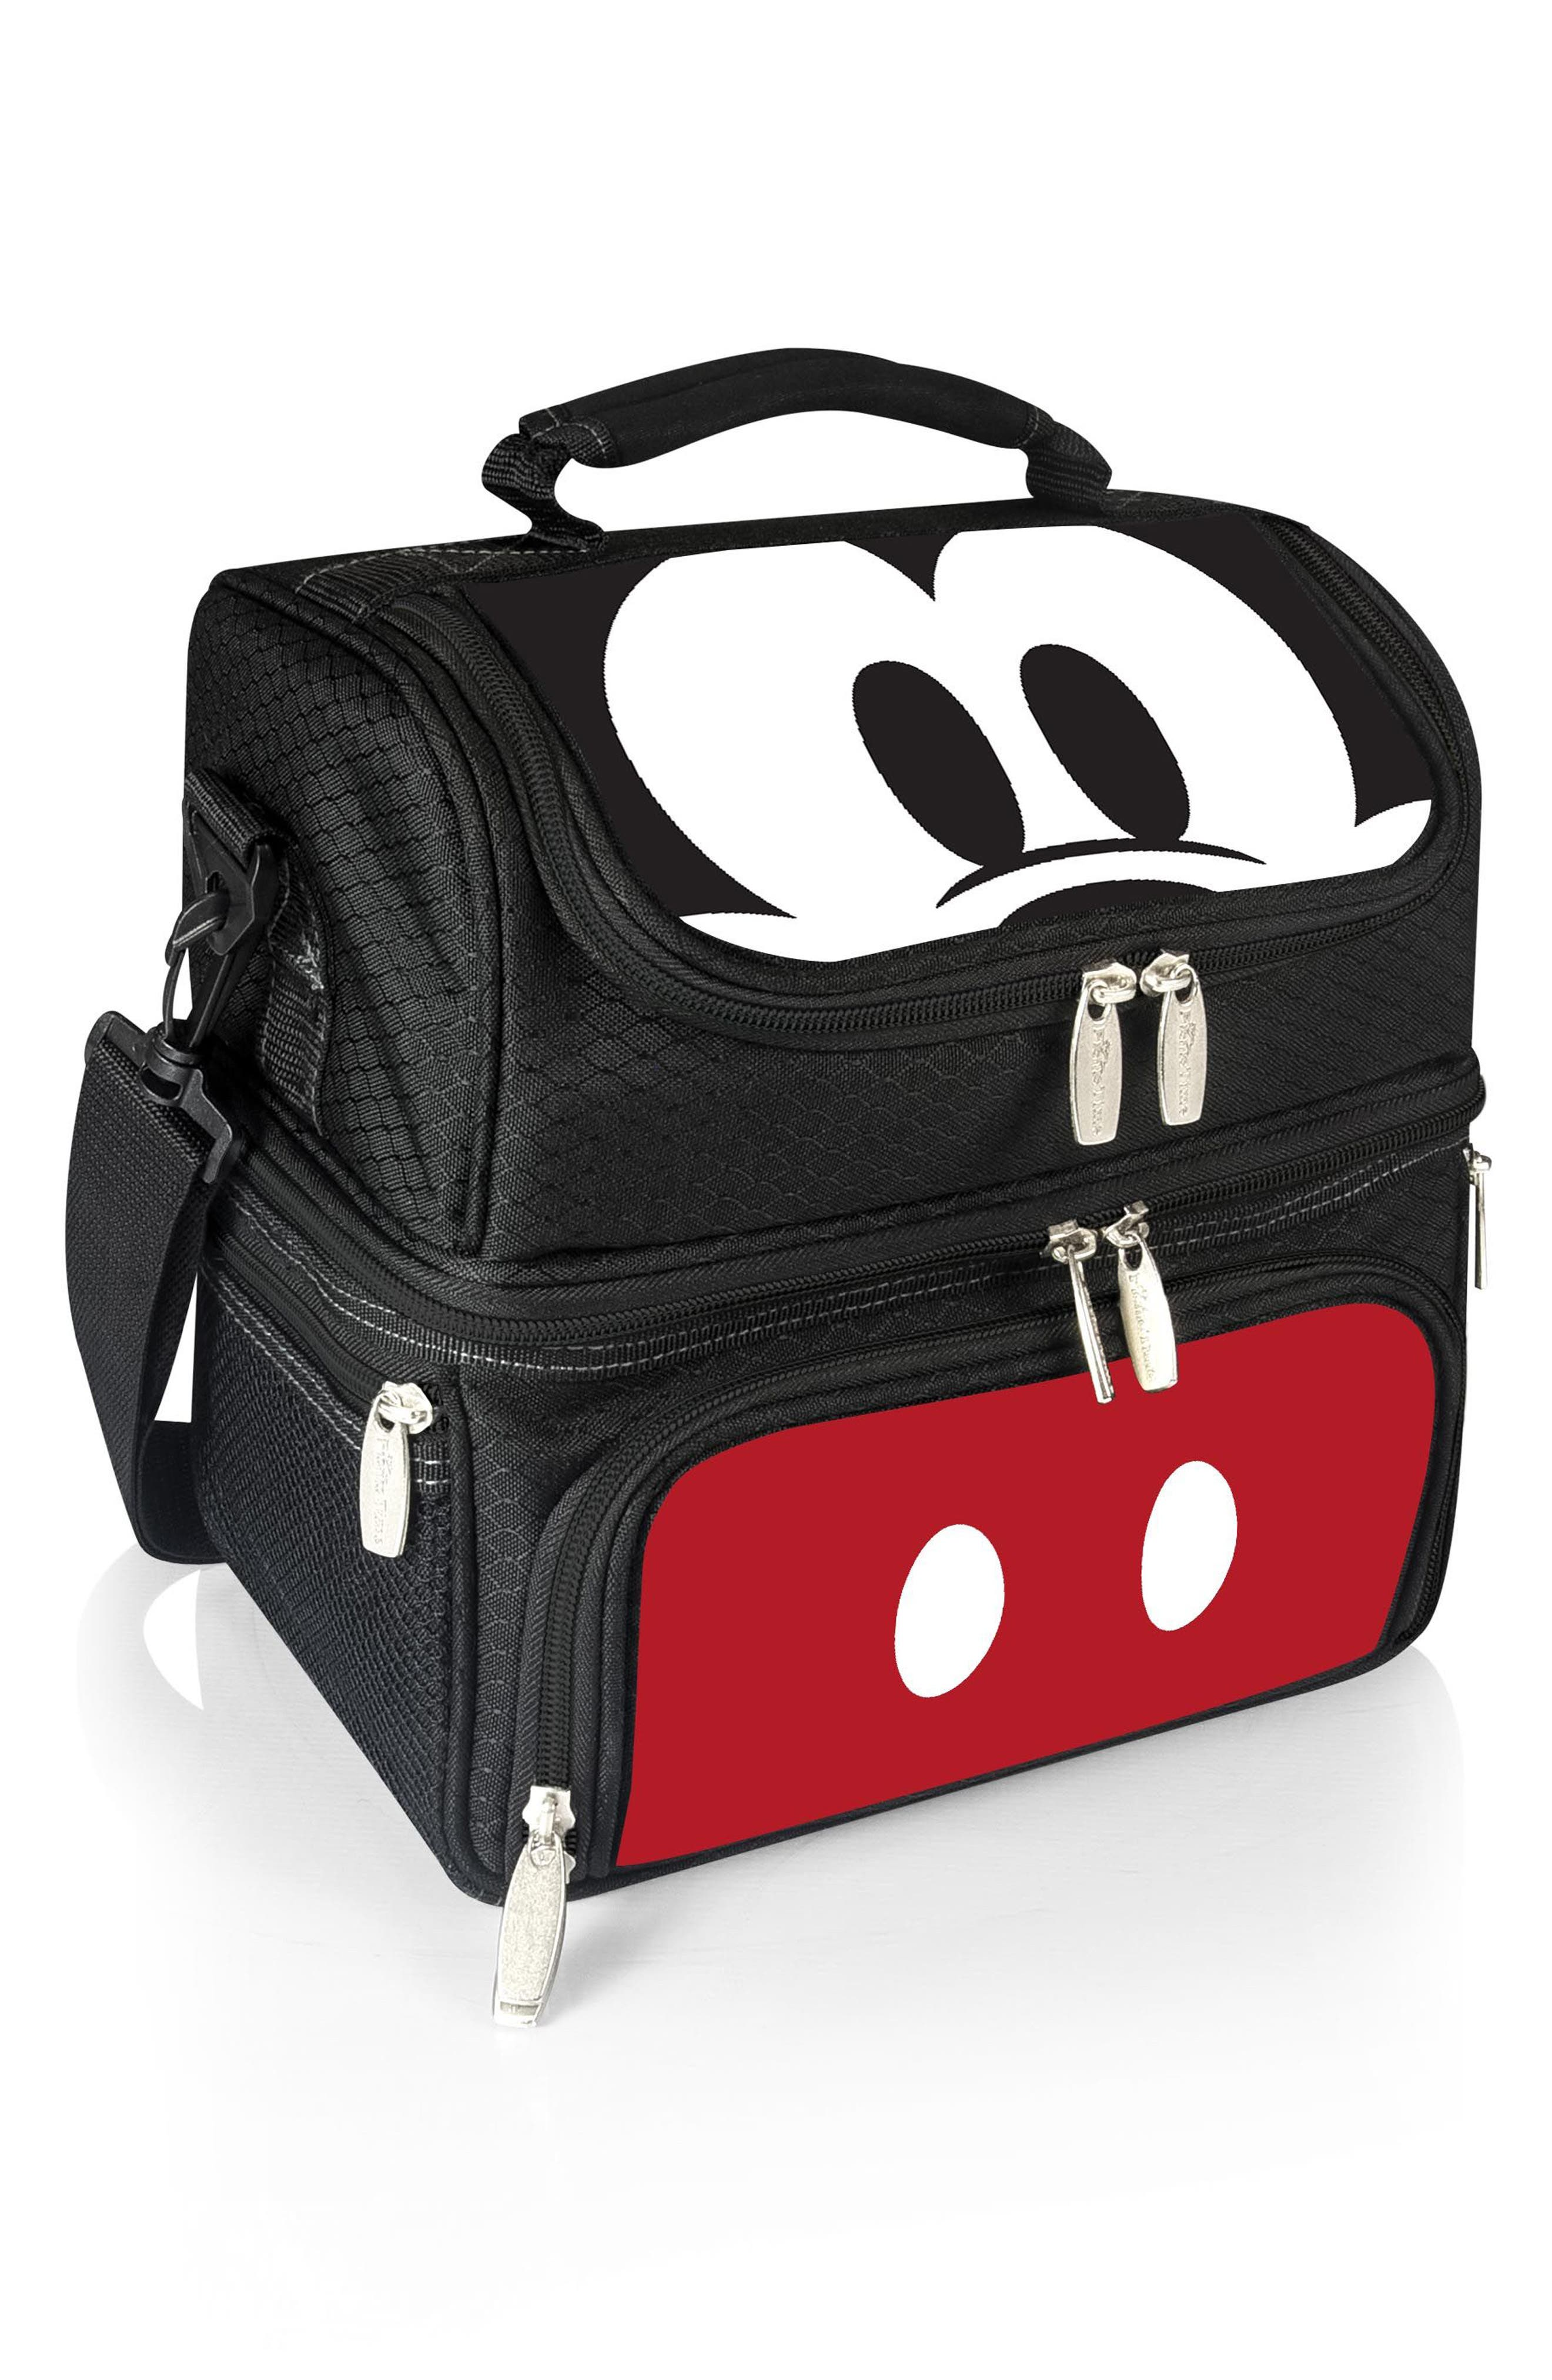 Alternate Image 1 Selected - Picnic Time Pranzo - Disney Insulated Lunch Tote